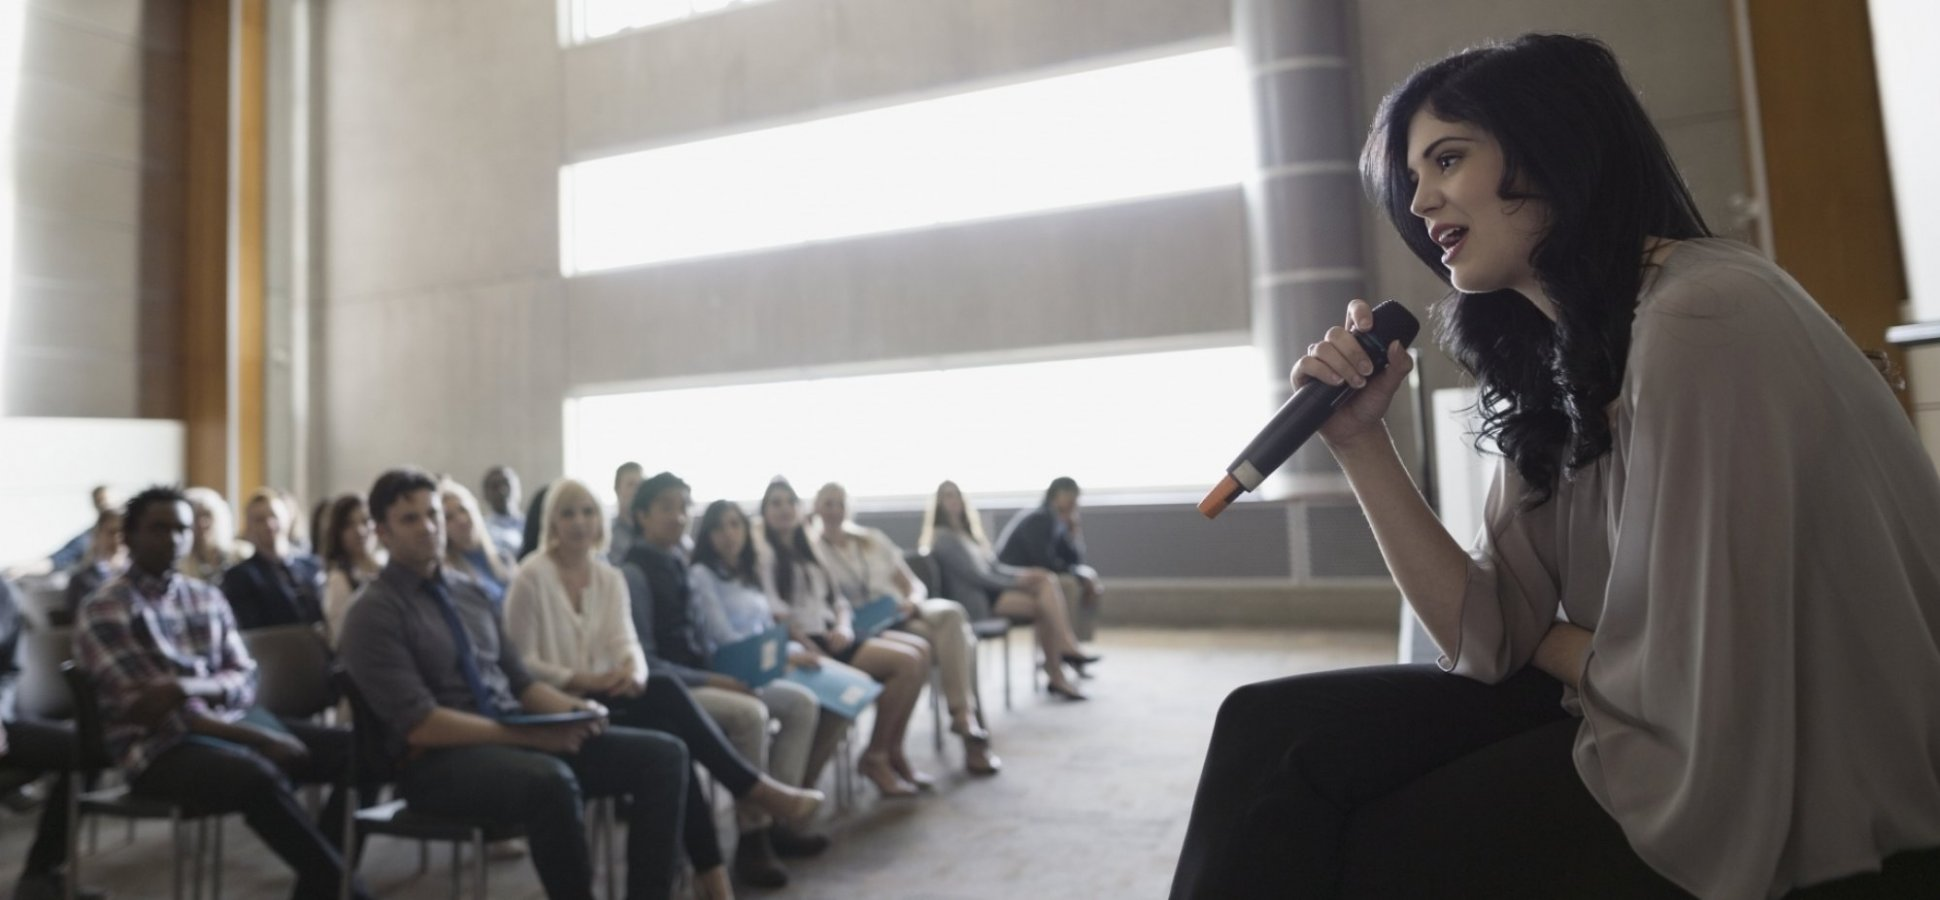 7 Must-Use Audience Engagement Tips From a Professional Storyteller